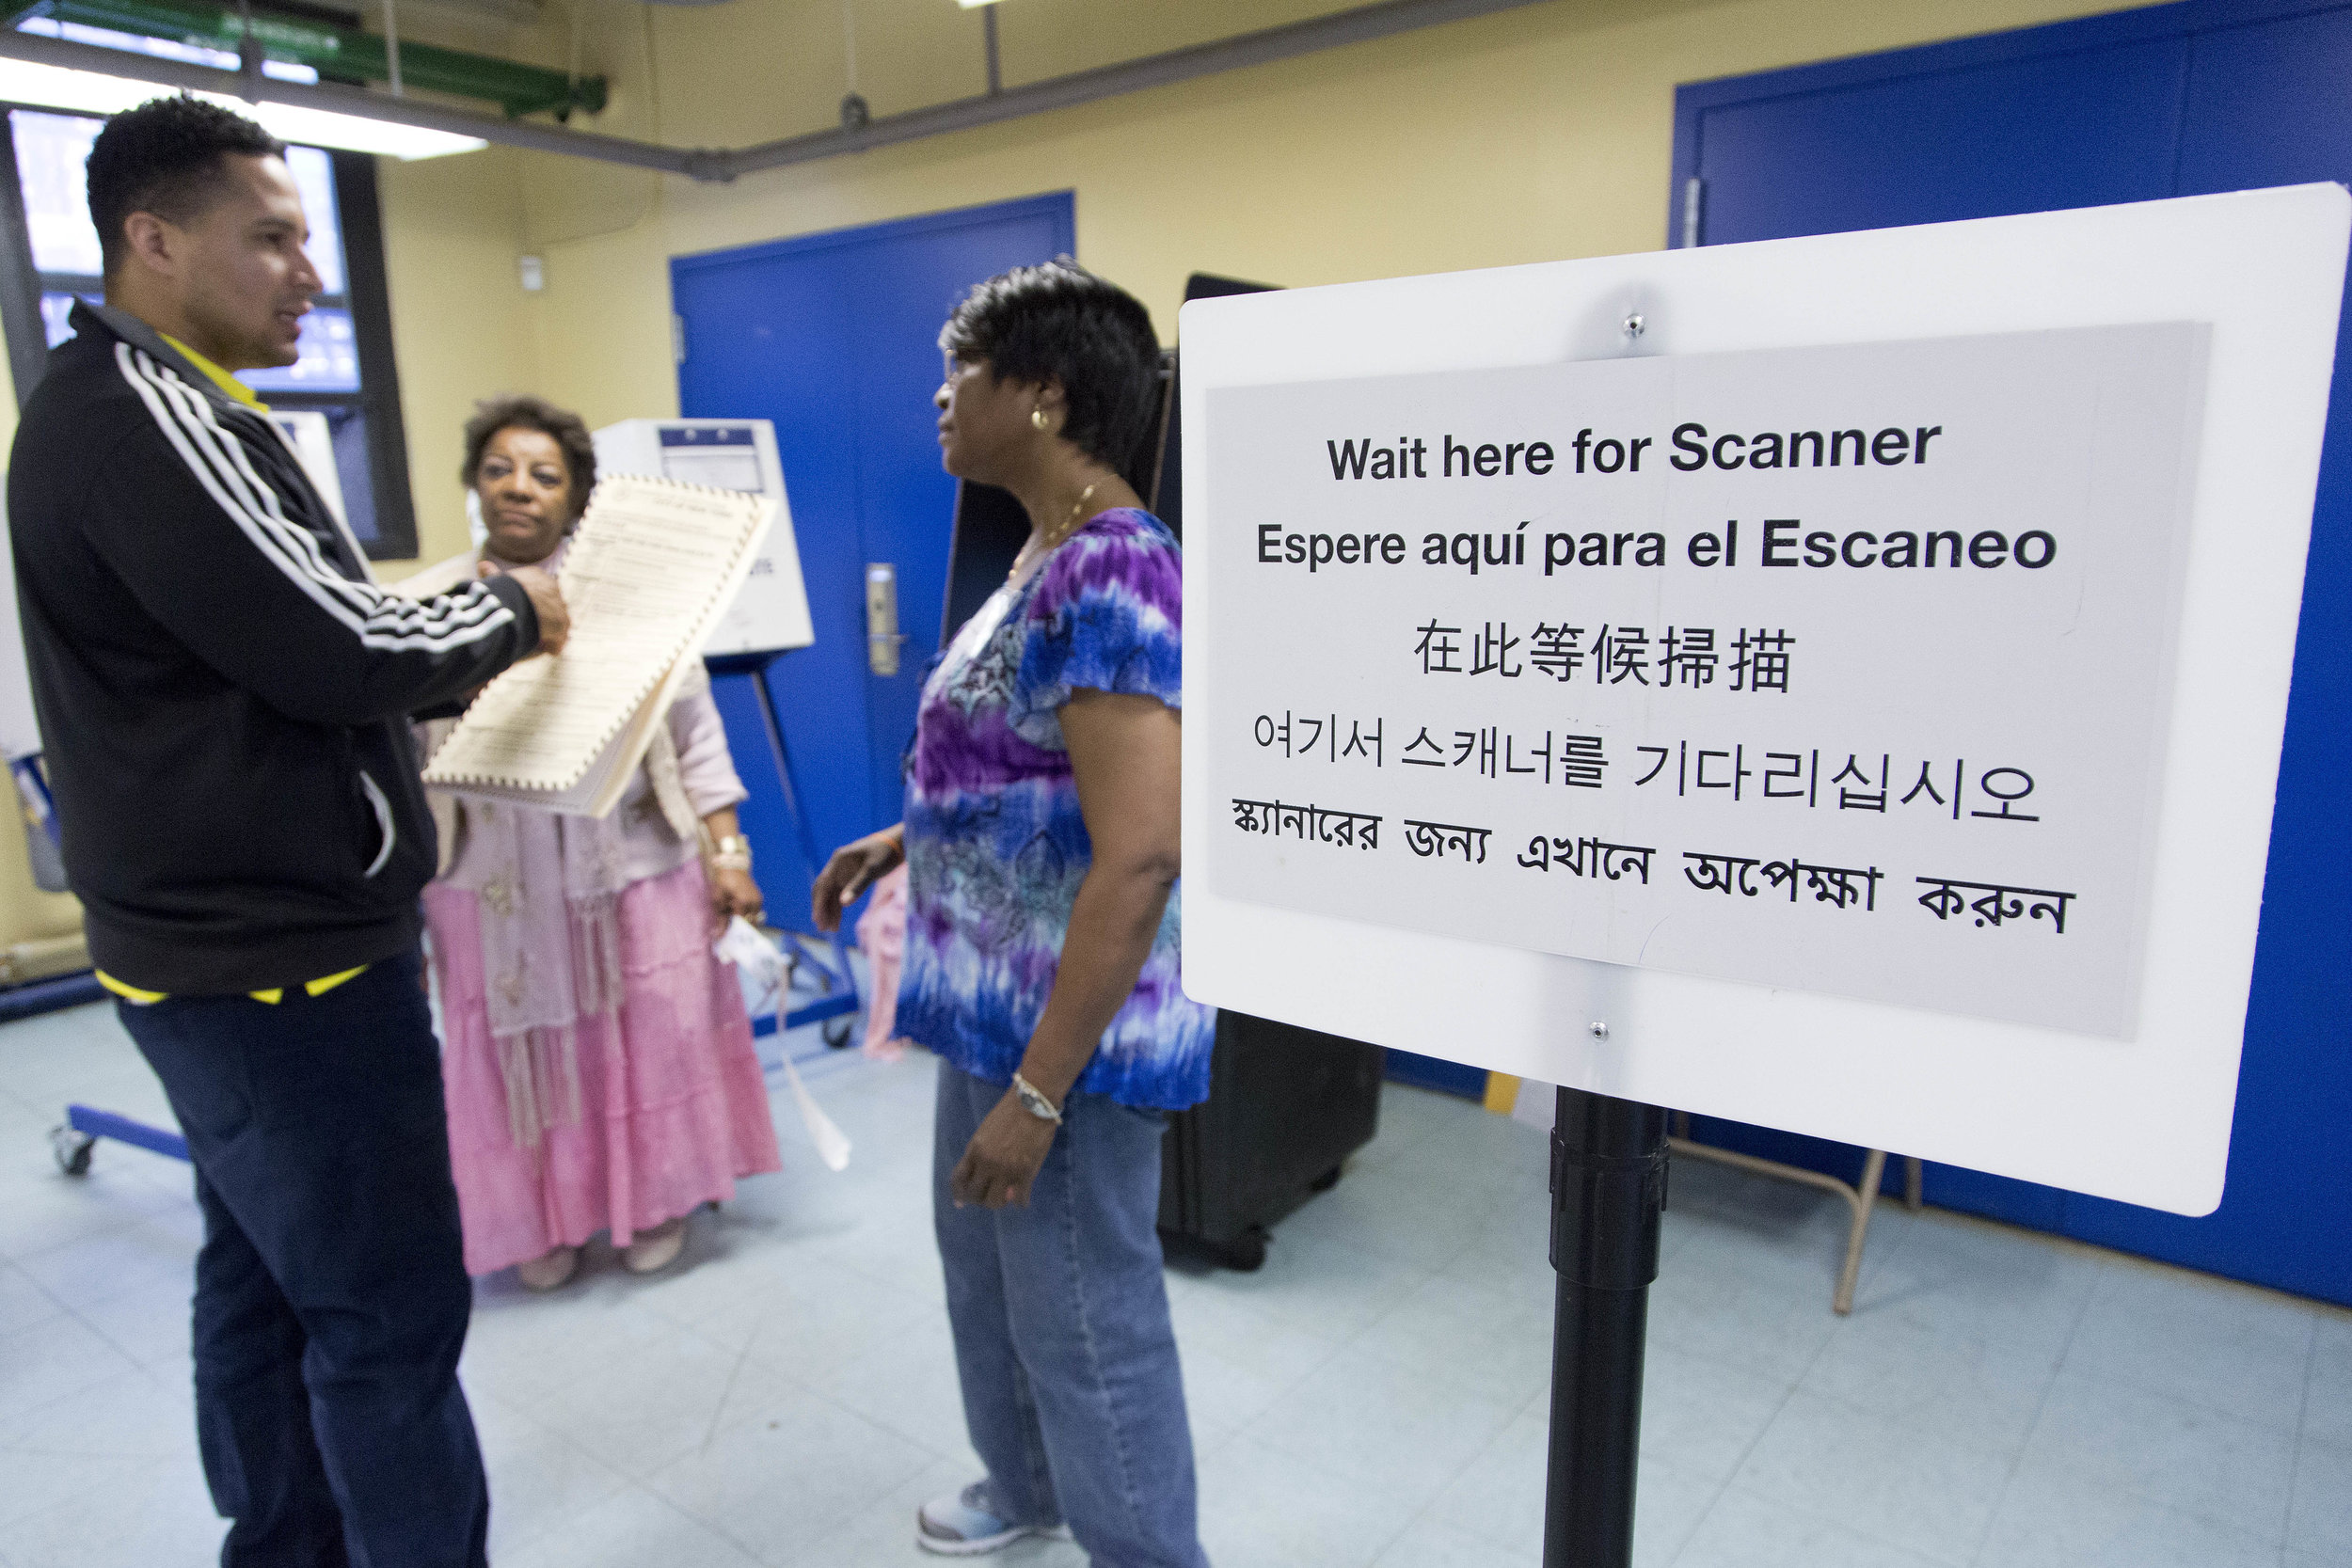 Darling Diaz, left, talks with poll worker Jamie Williams-Rivera before voting in Flushing. Photo by Mark Lennihan courtesy of AP